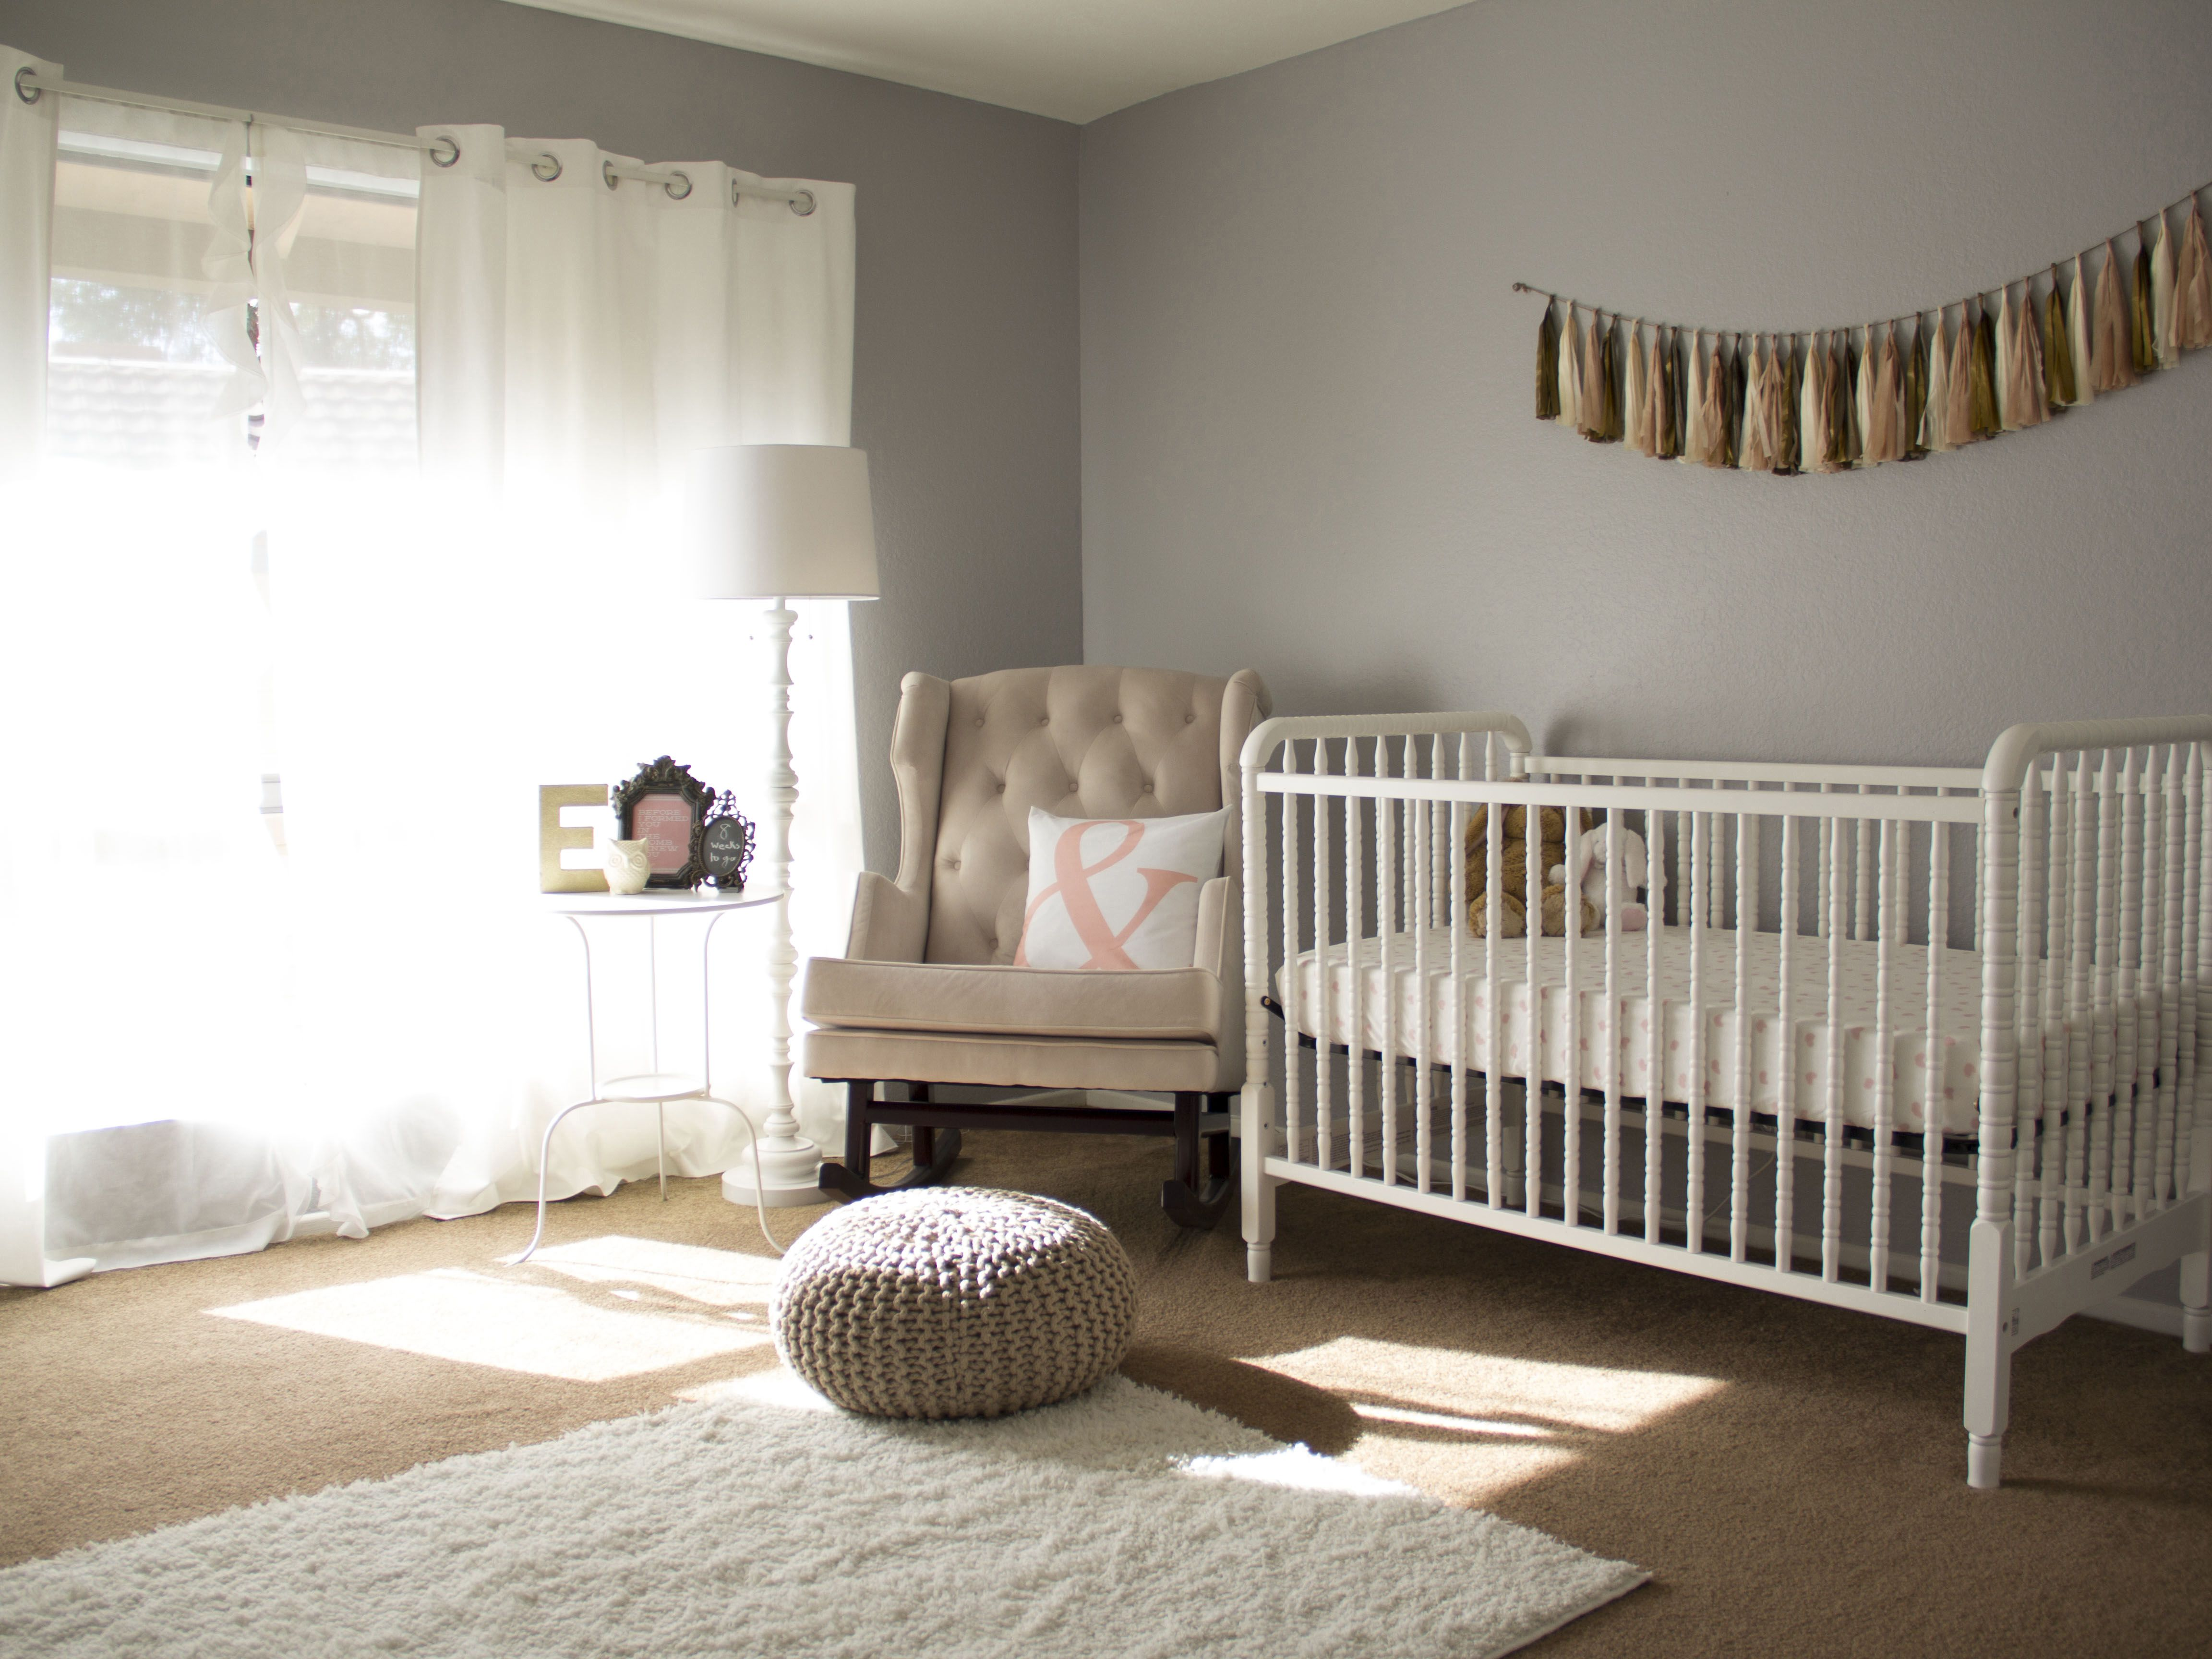 How To Layer A Rug On Top Of Carpet In Your Nursery